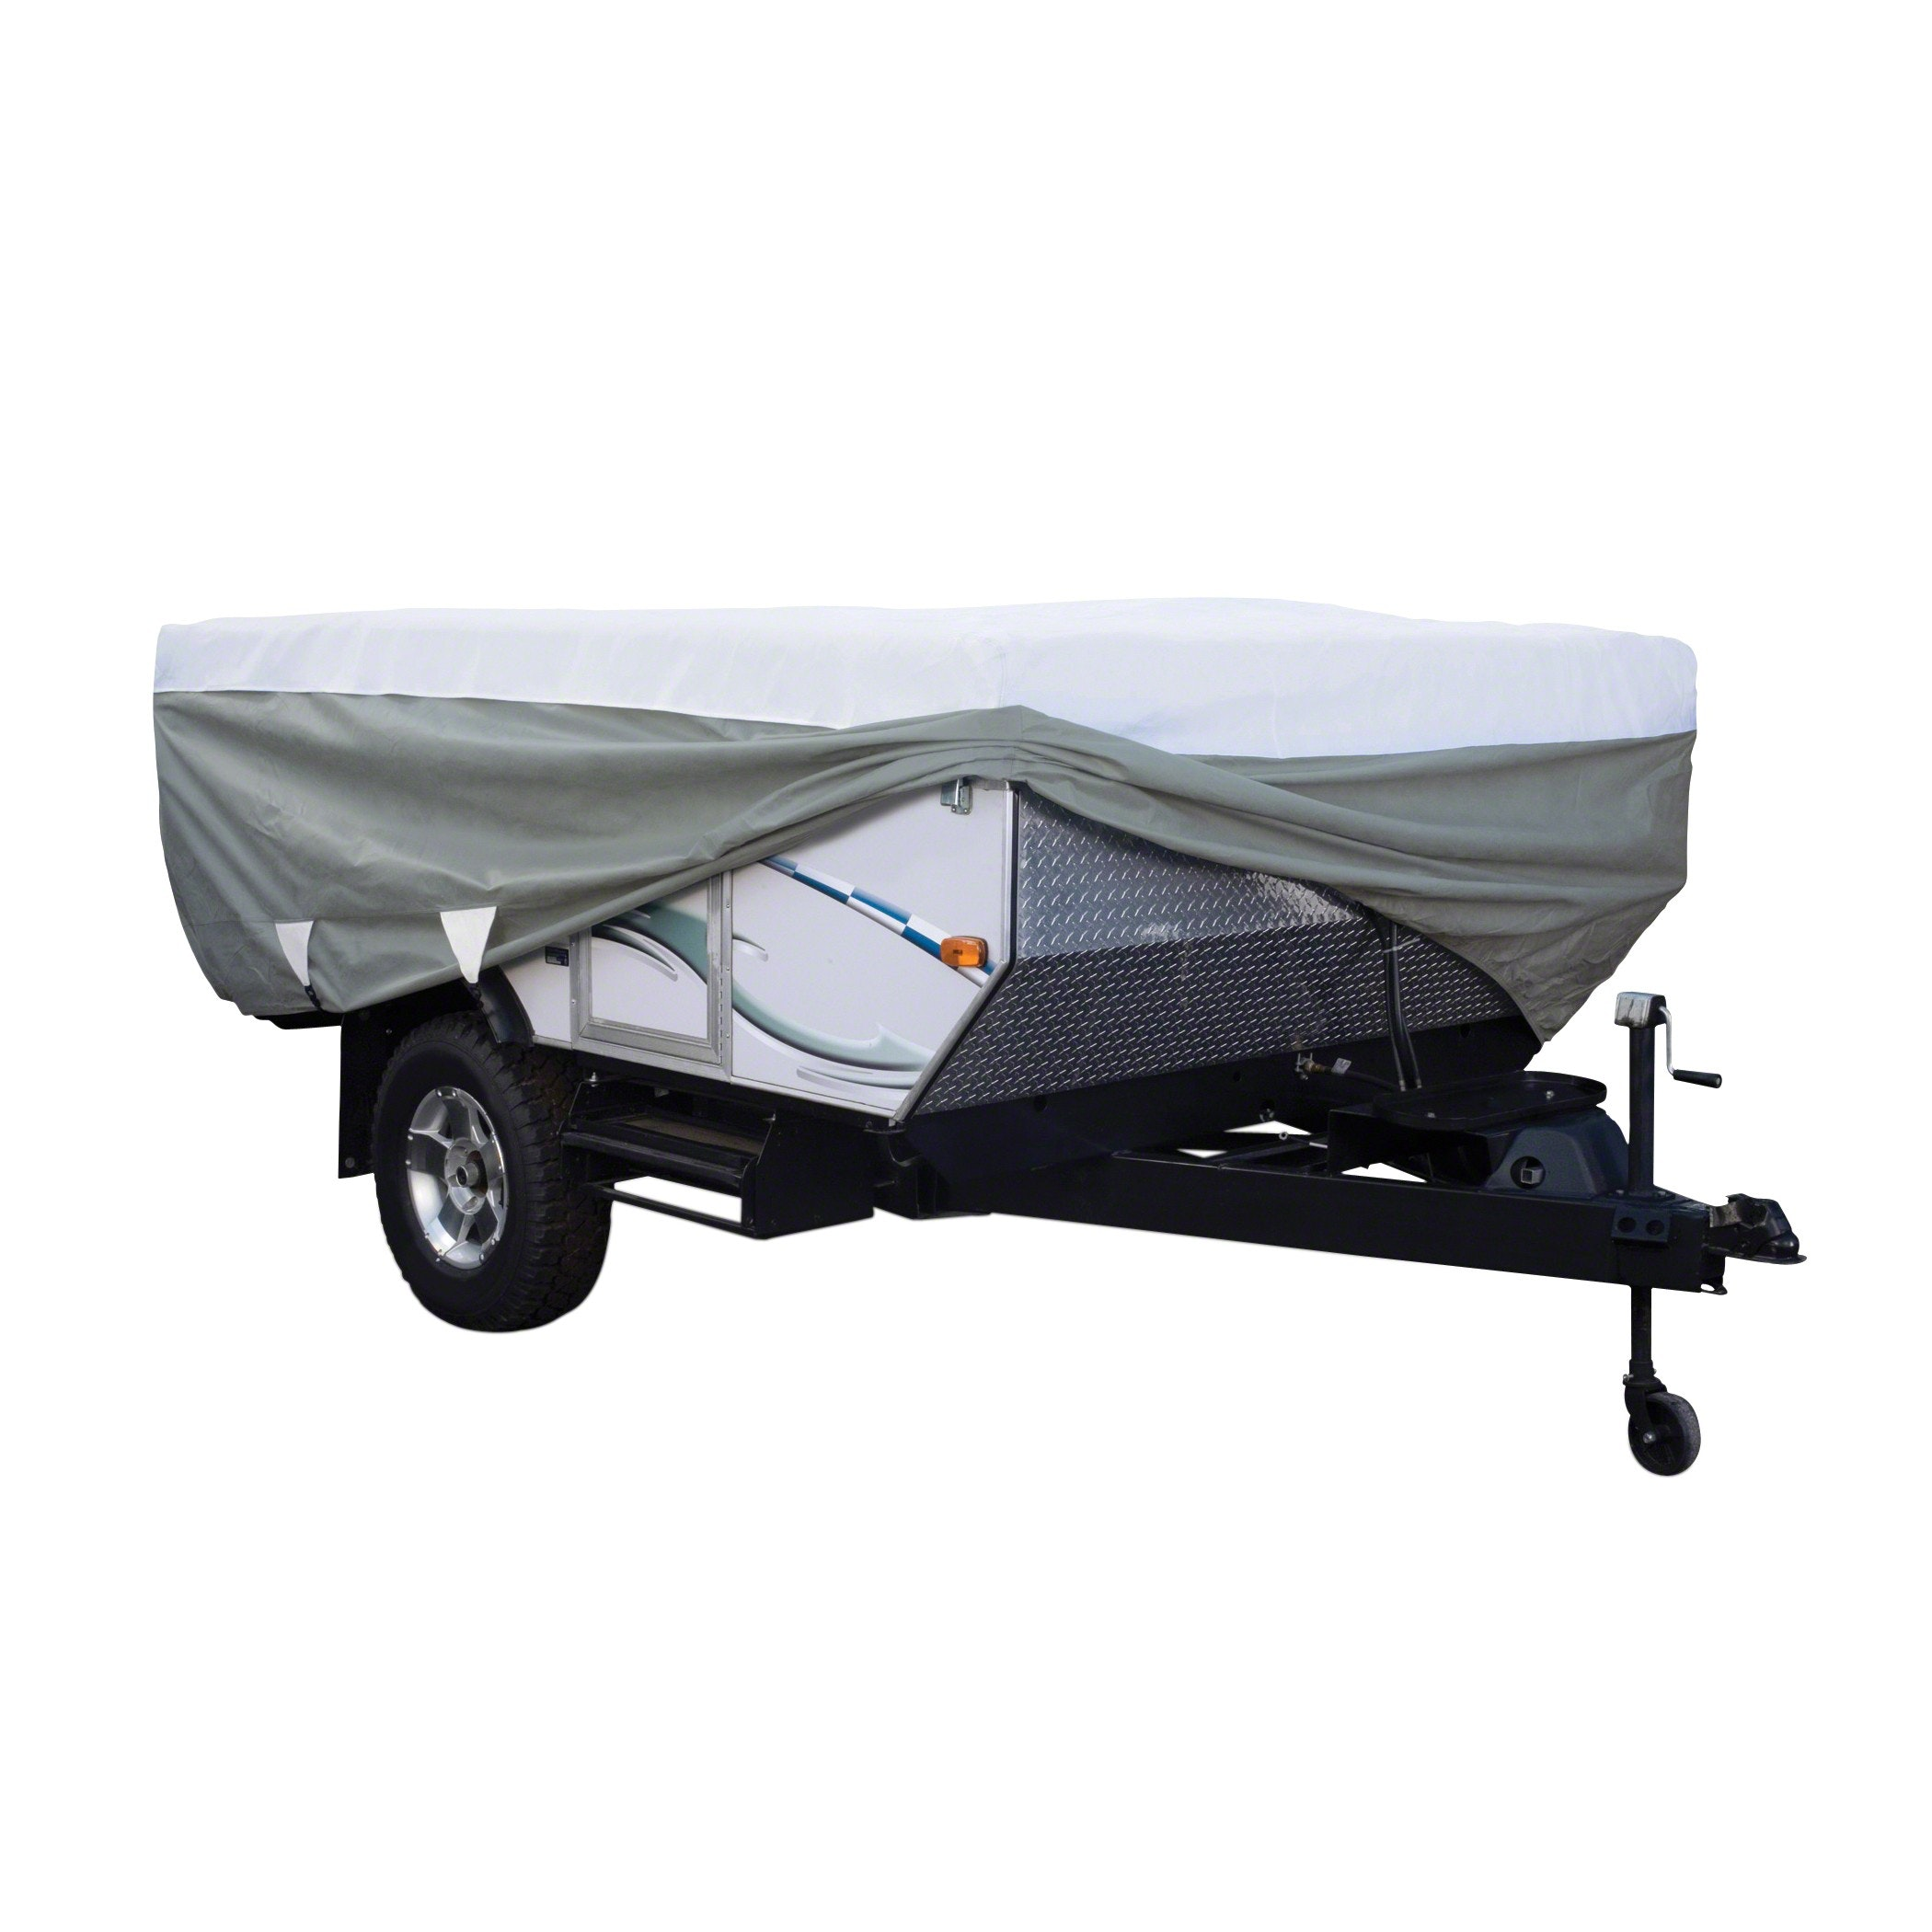 Main Product Image for  Classic PolyPRO 3 10' - 12' Folding Trailer / Pop Up Camper RV Cover